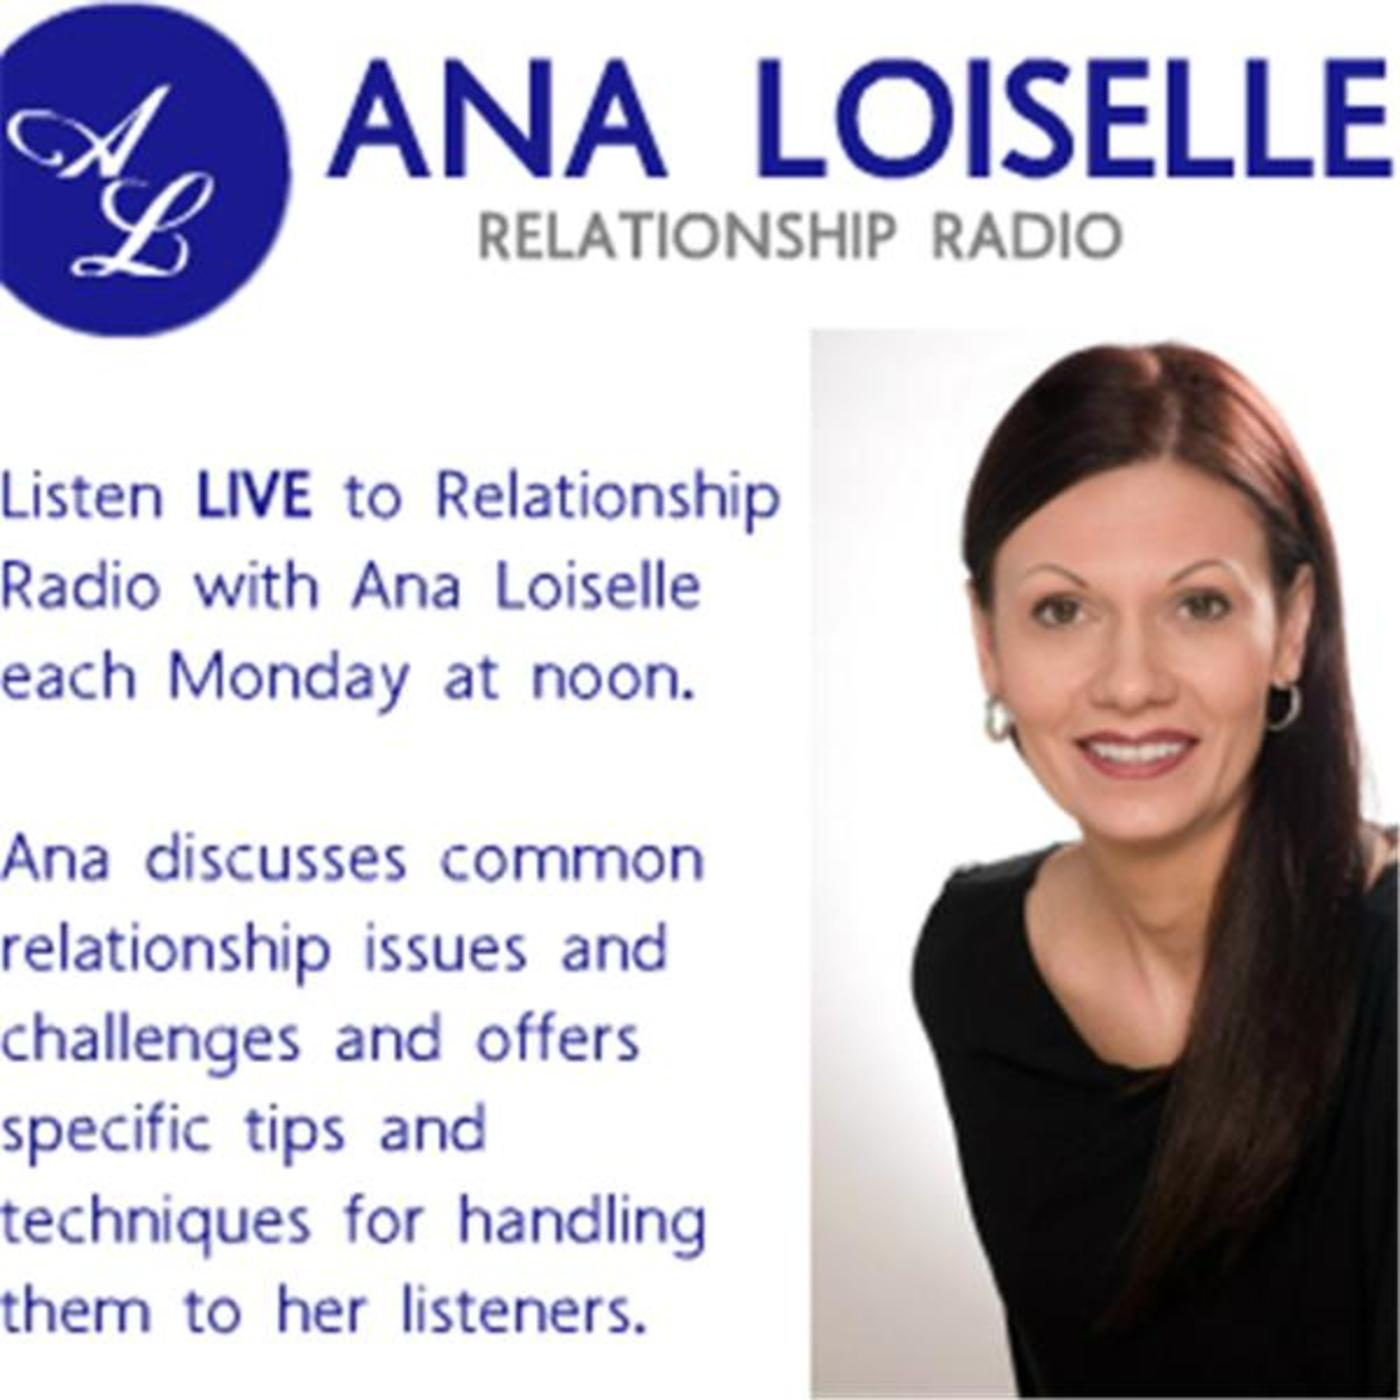 Relationship Radio with Ana Loiselle